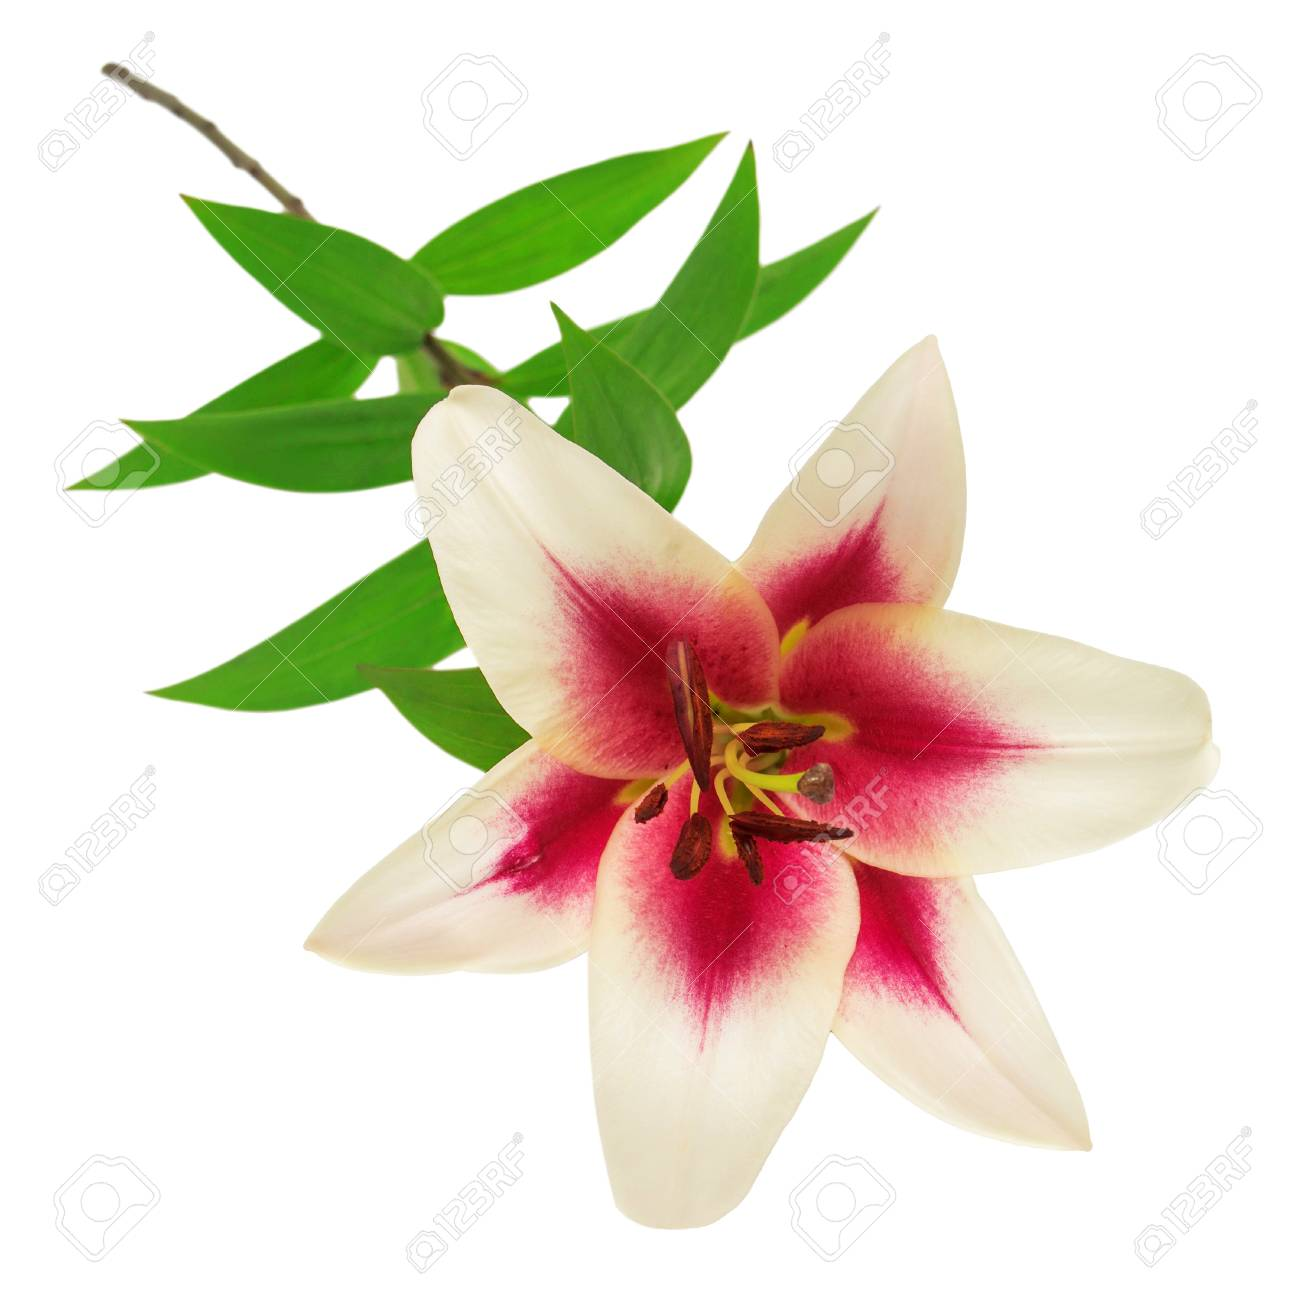 Beautiful Pink Lily Flower Isolated On White Background Stock Photo